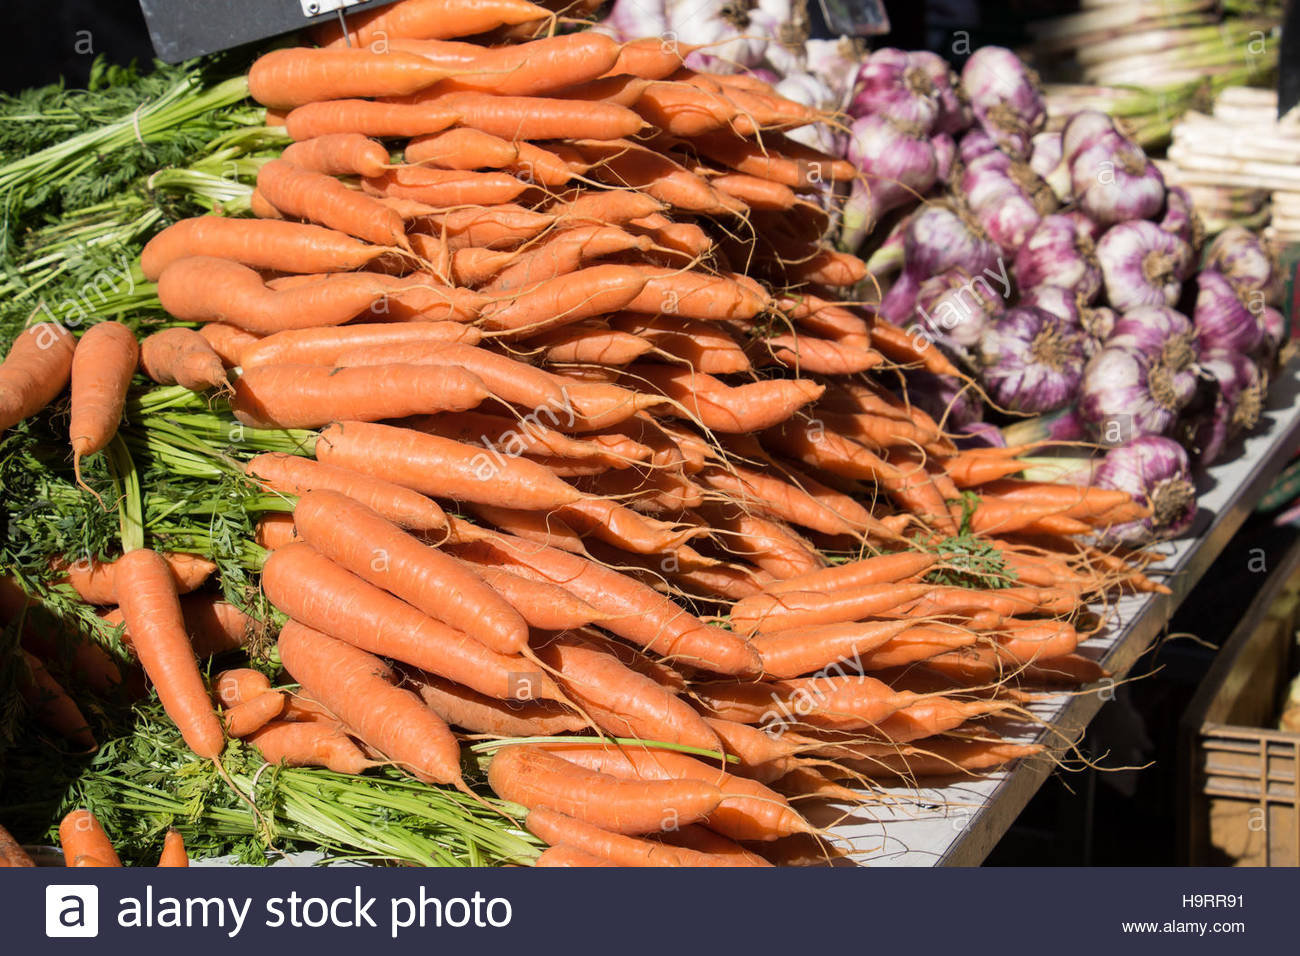 Carrots Garlic for Sale on the Farmer's street food market in Southern France, Provence, farmers market food - Stock Image